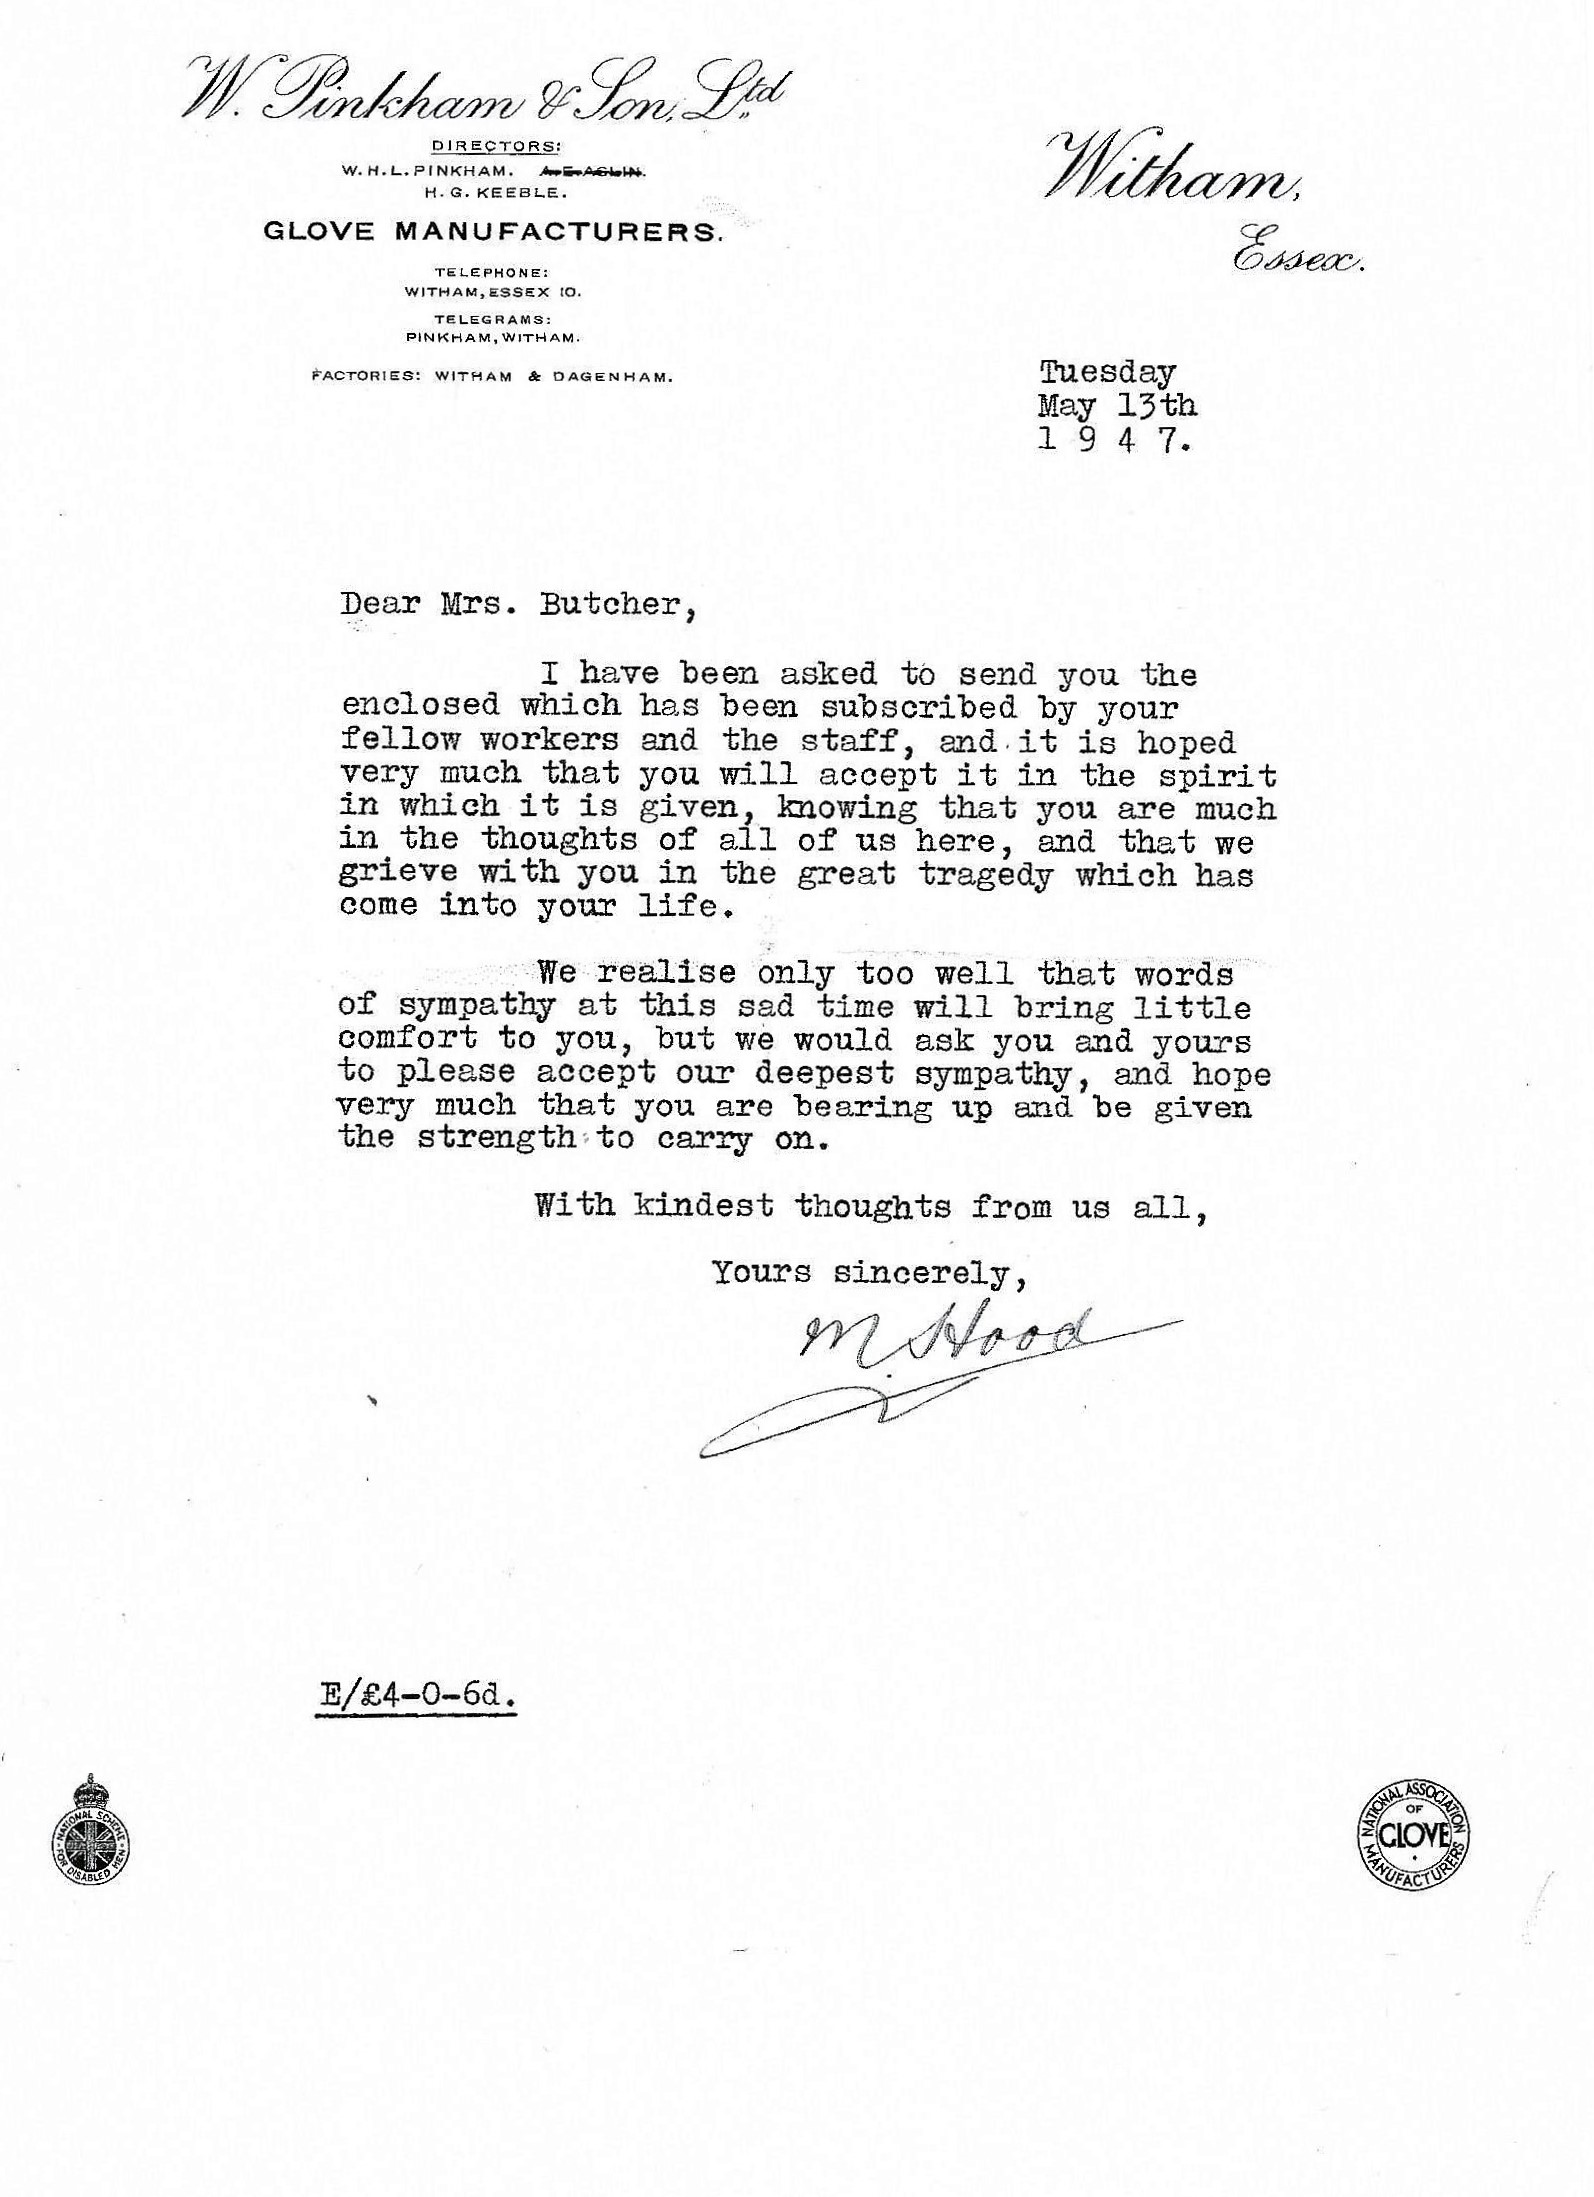 Letter M Hood to Mrs Butcher